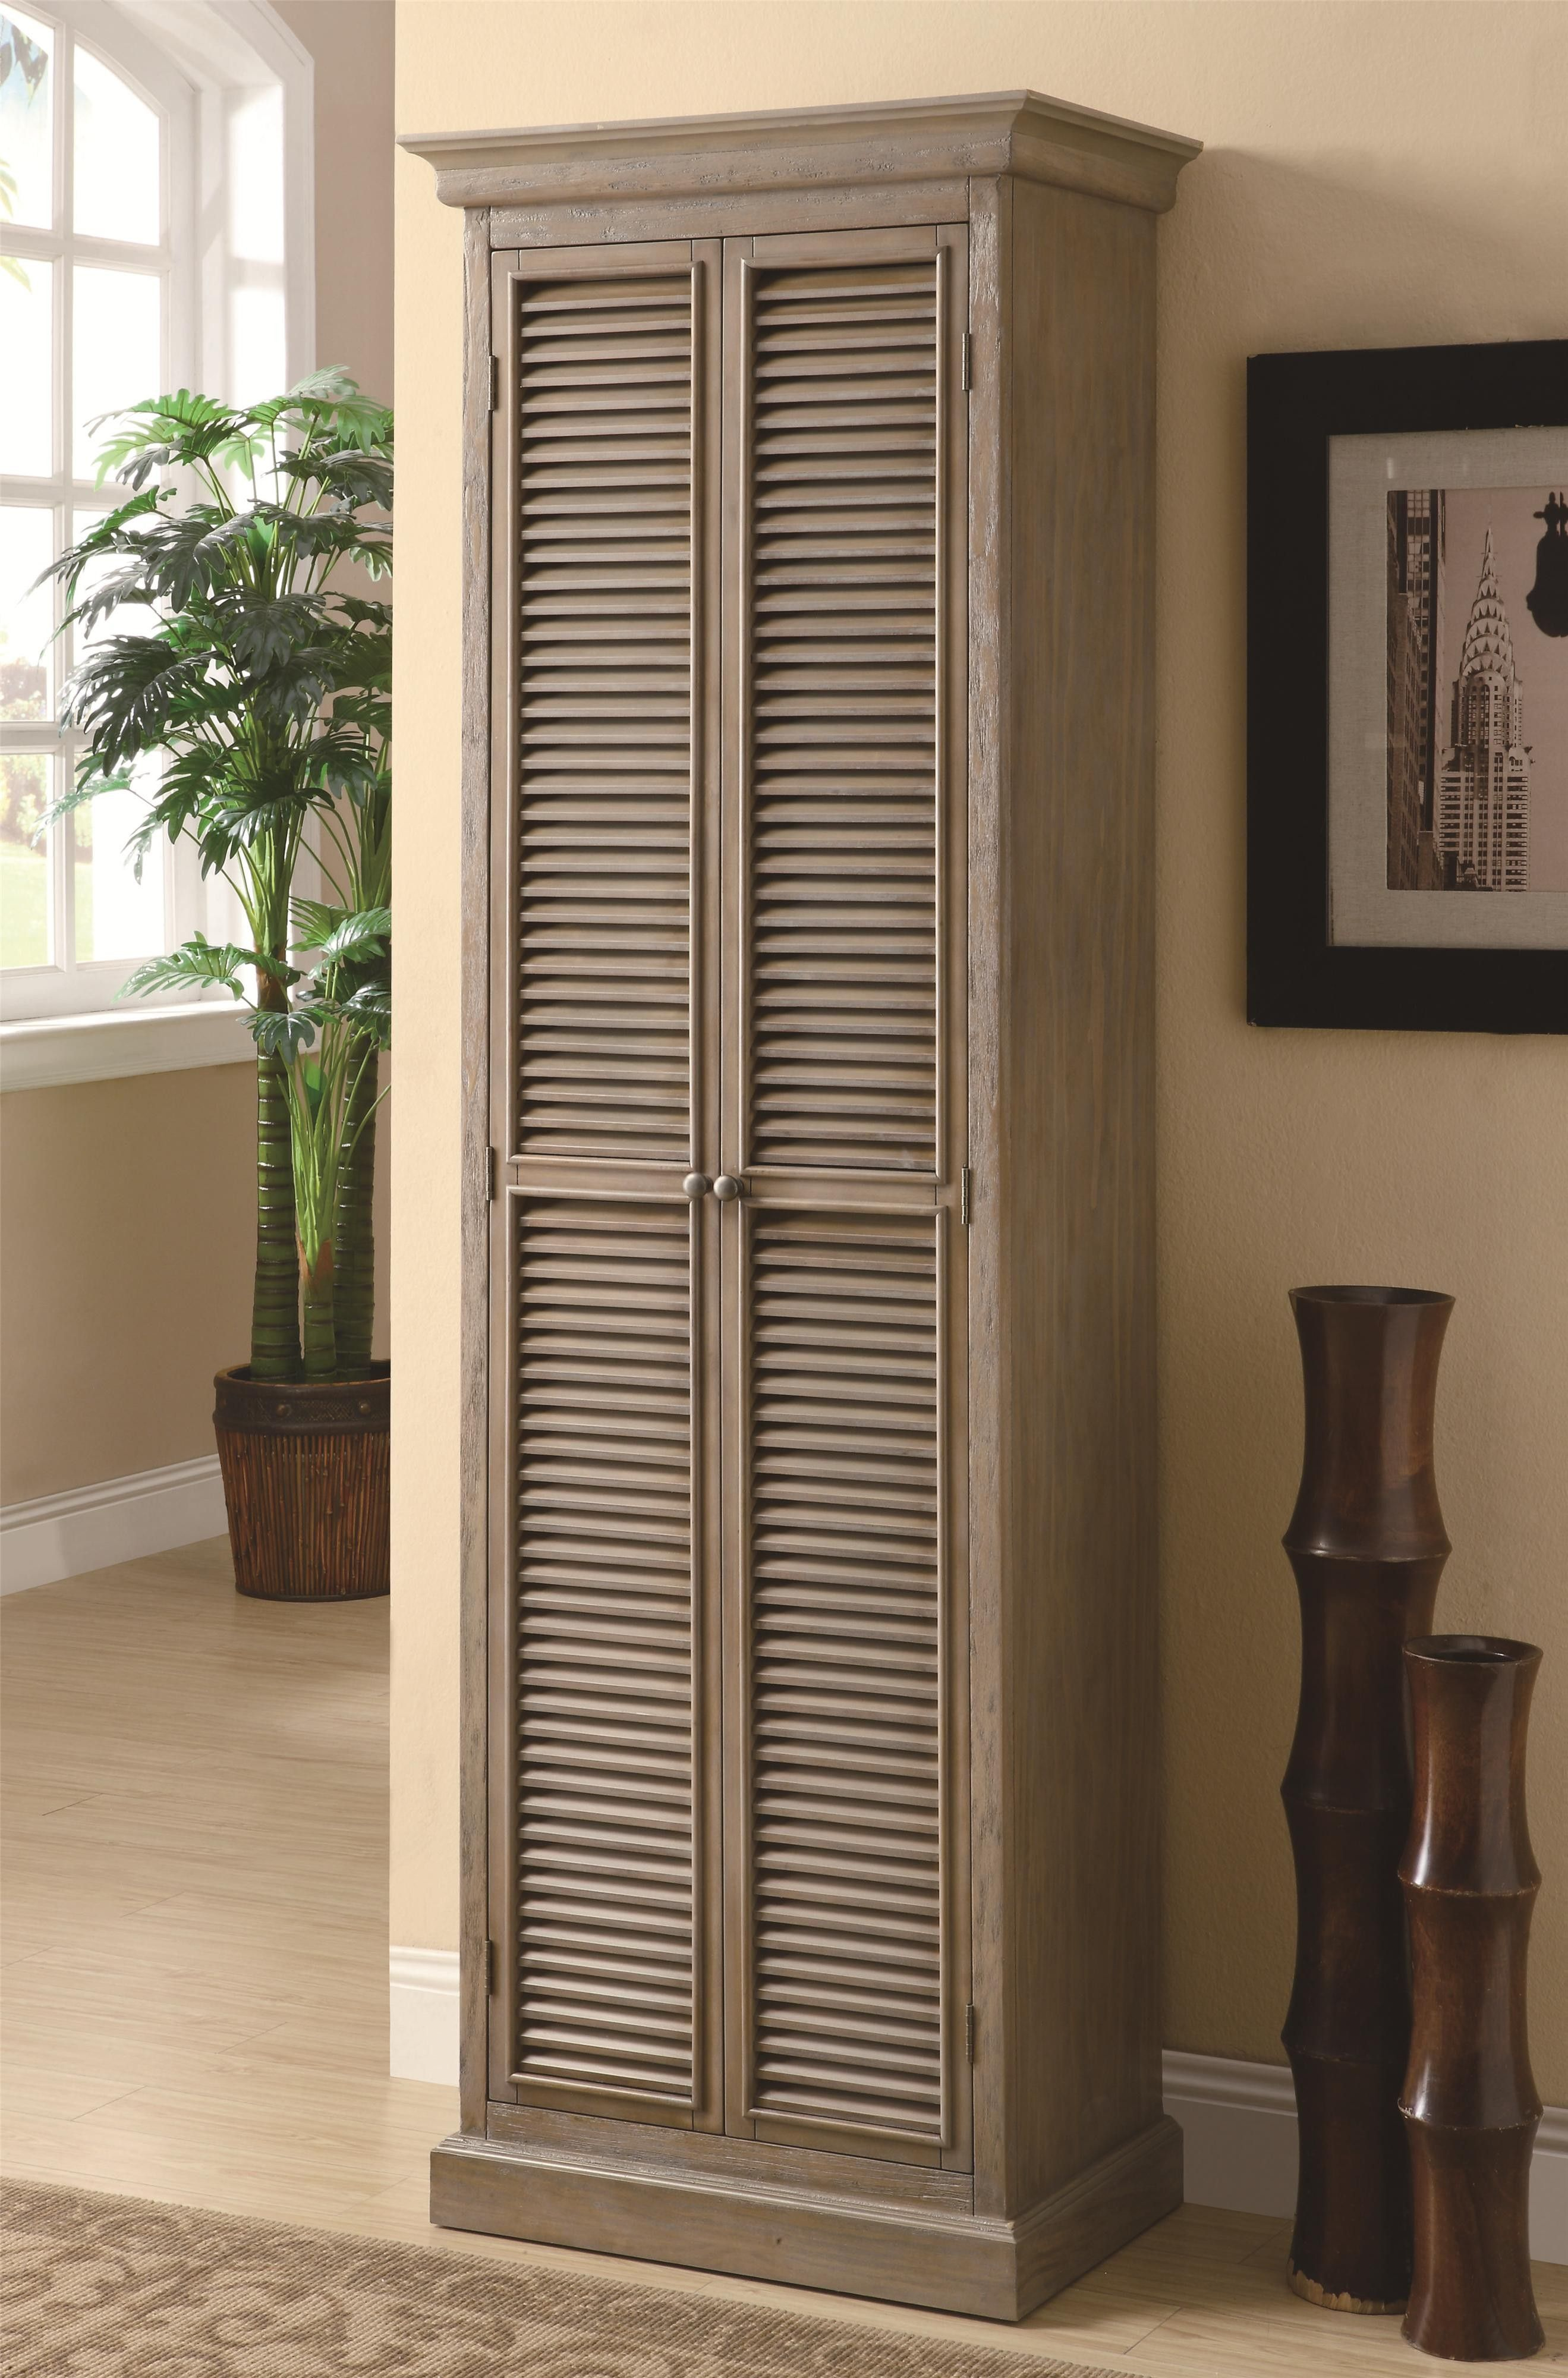 Unpolished Shutter Door Tall Storage Cabinet Placed On Cream Laminated Wooden Floor With Garage Units